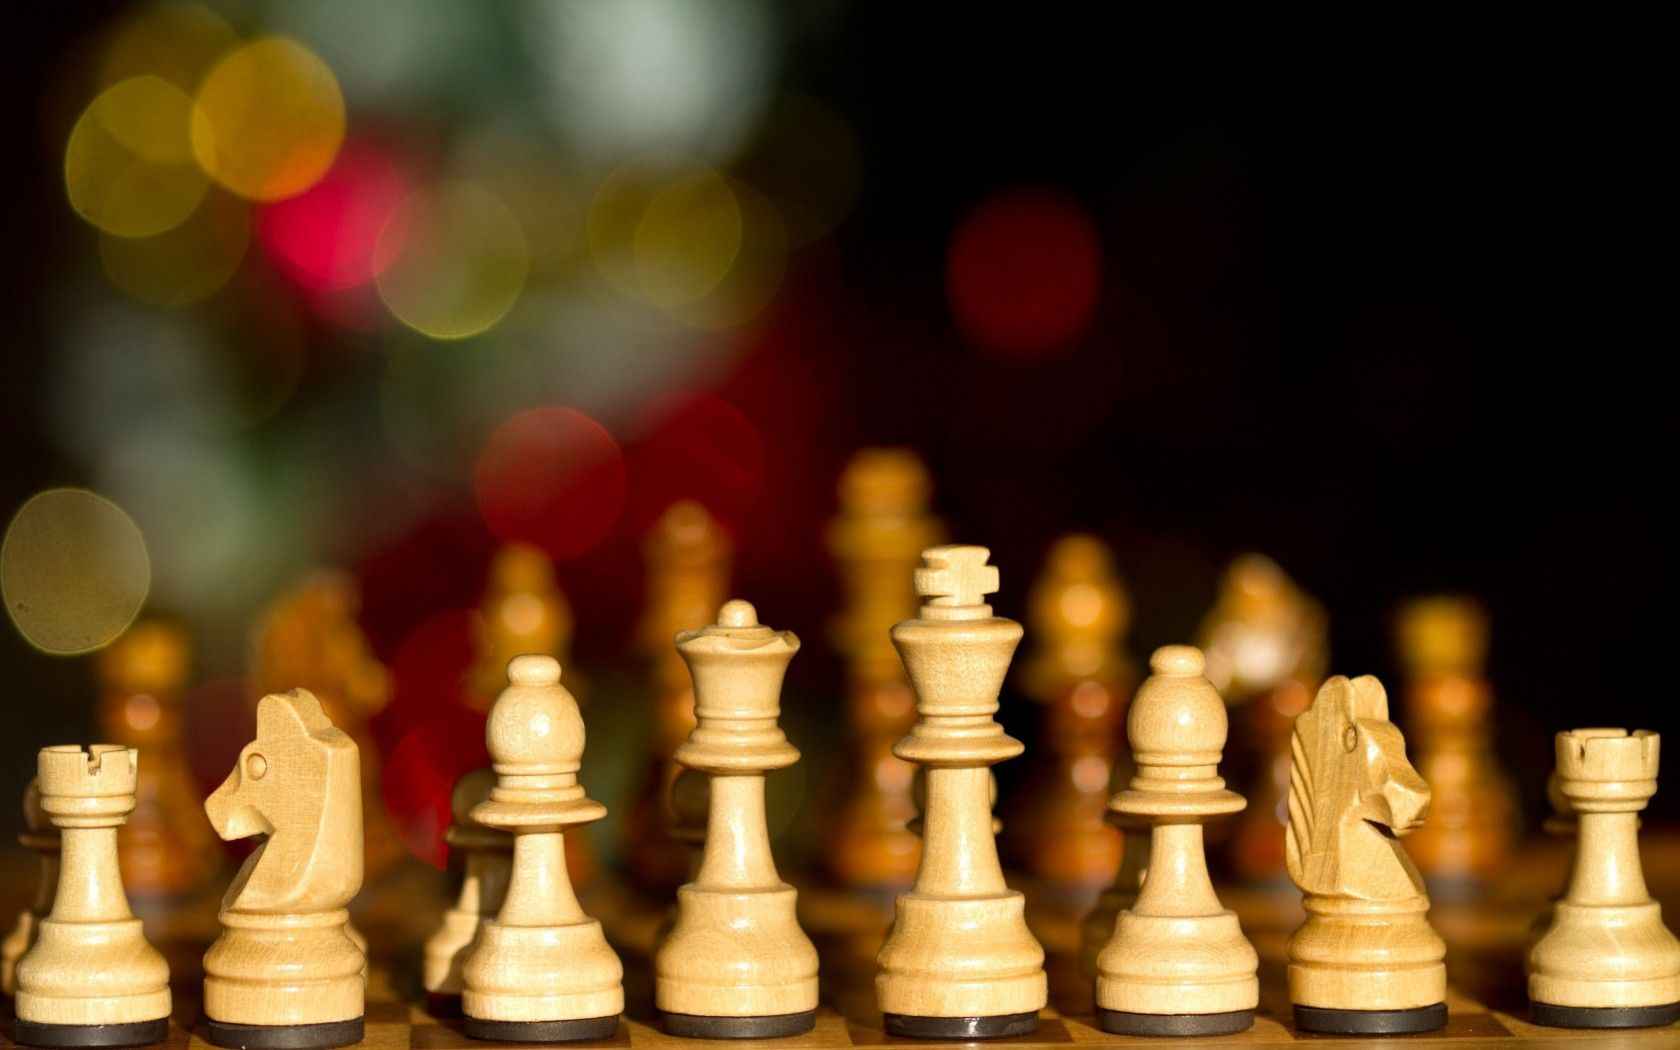 Chess Wallpaper Hd 5pn Awesomeness Pinterest Chess Games And